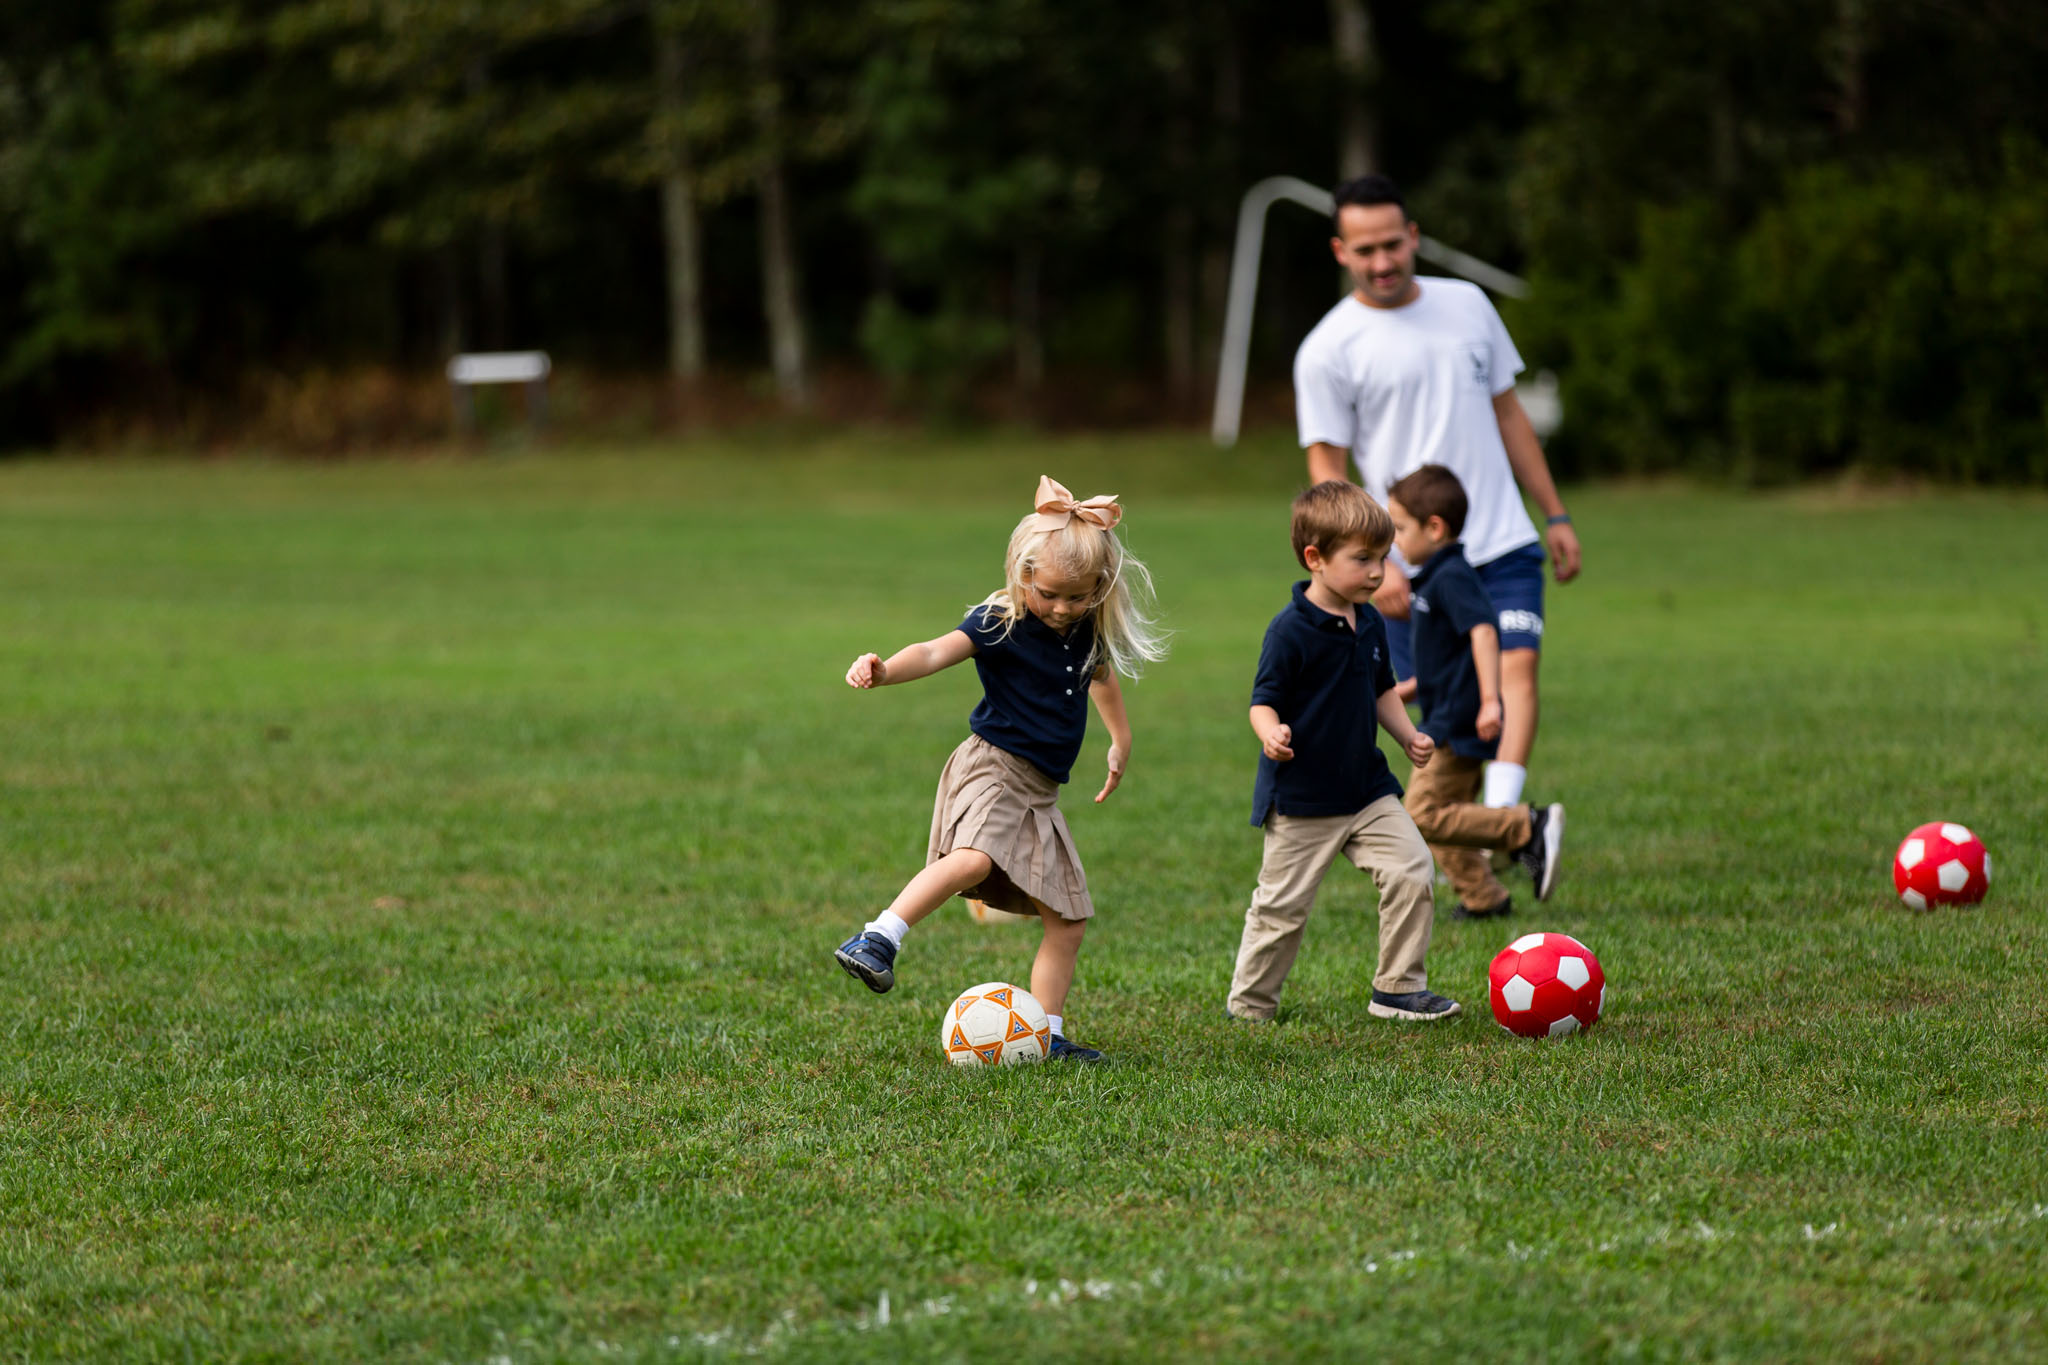 11:00AM RECESS OR LARGE MOVEMENT GAMES